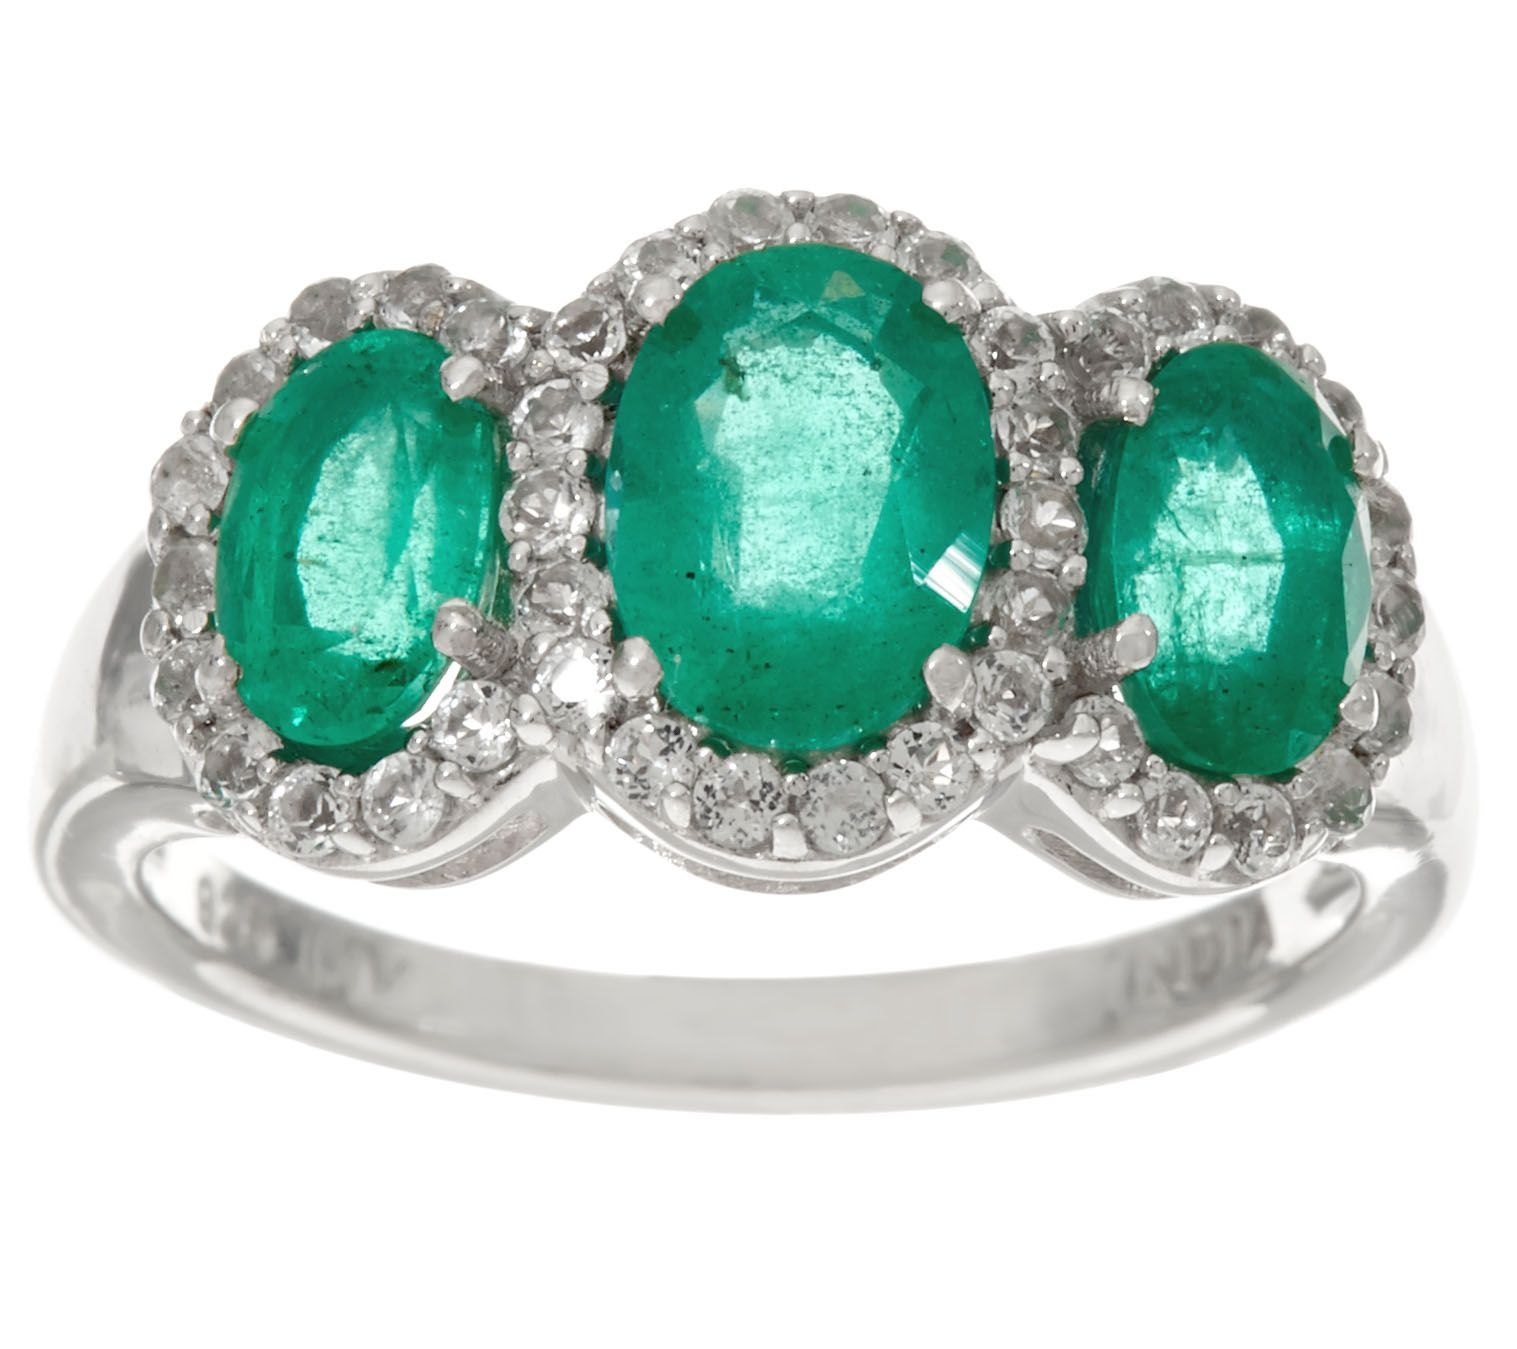 page green gemstone ring qvc topaz precious rings sterling product com stone white